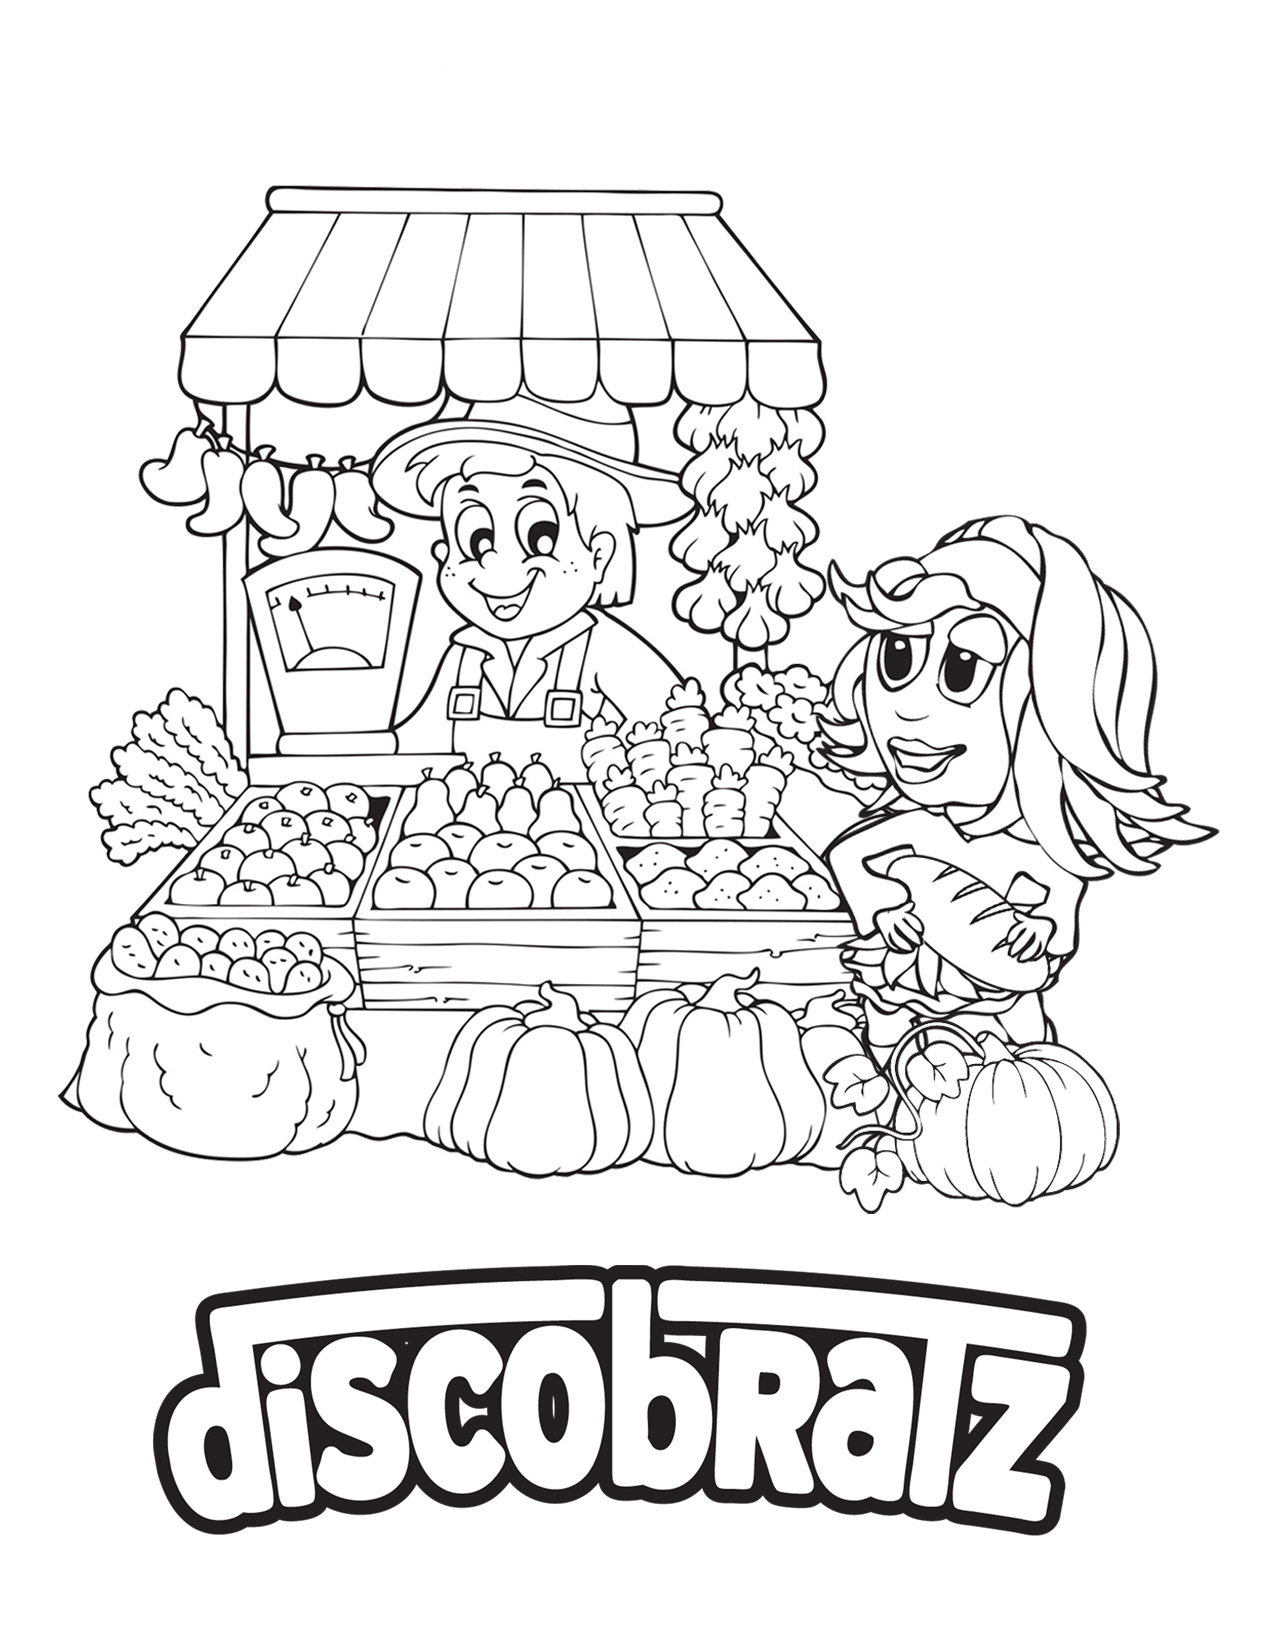 discobratz releases its national nutrition month coloring page Nutrition Coloring Pages Printable  Coloring Pages For Nutrition Month